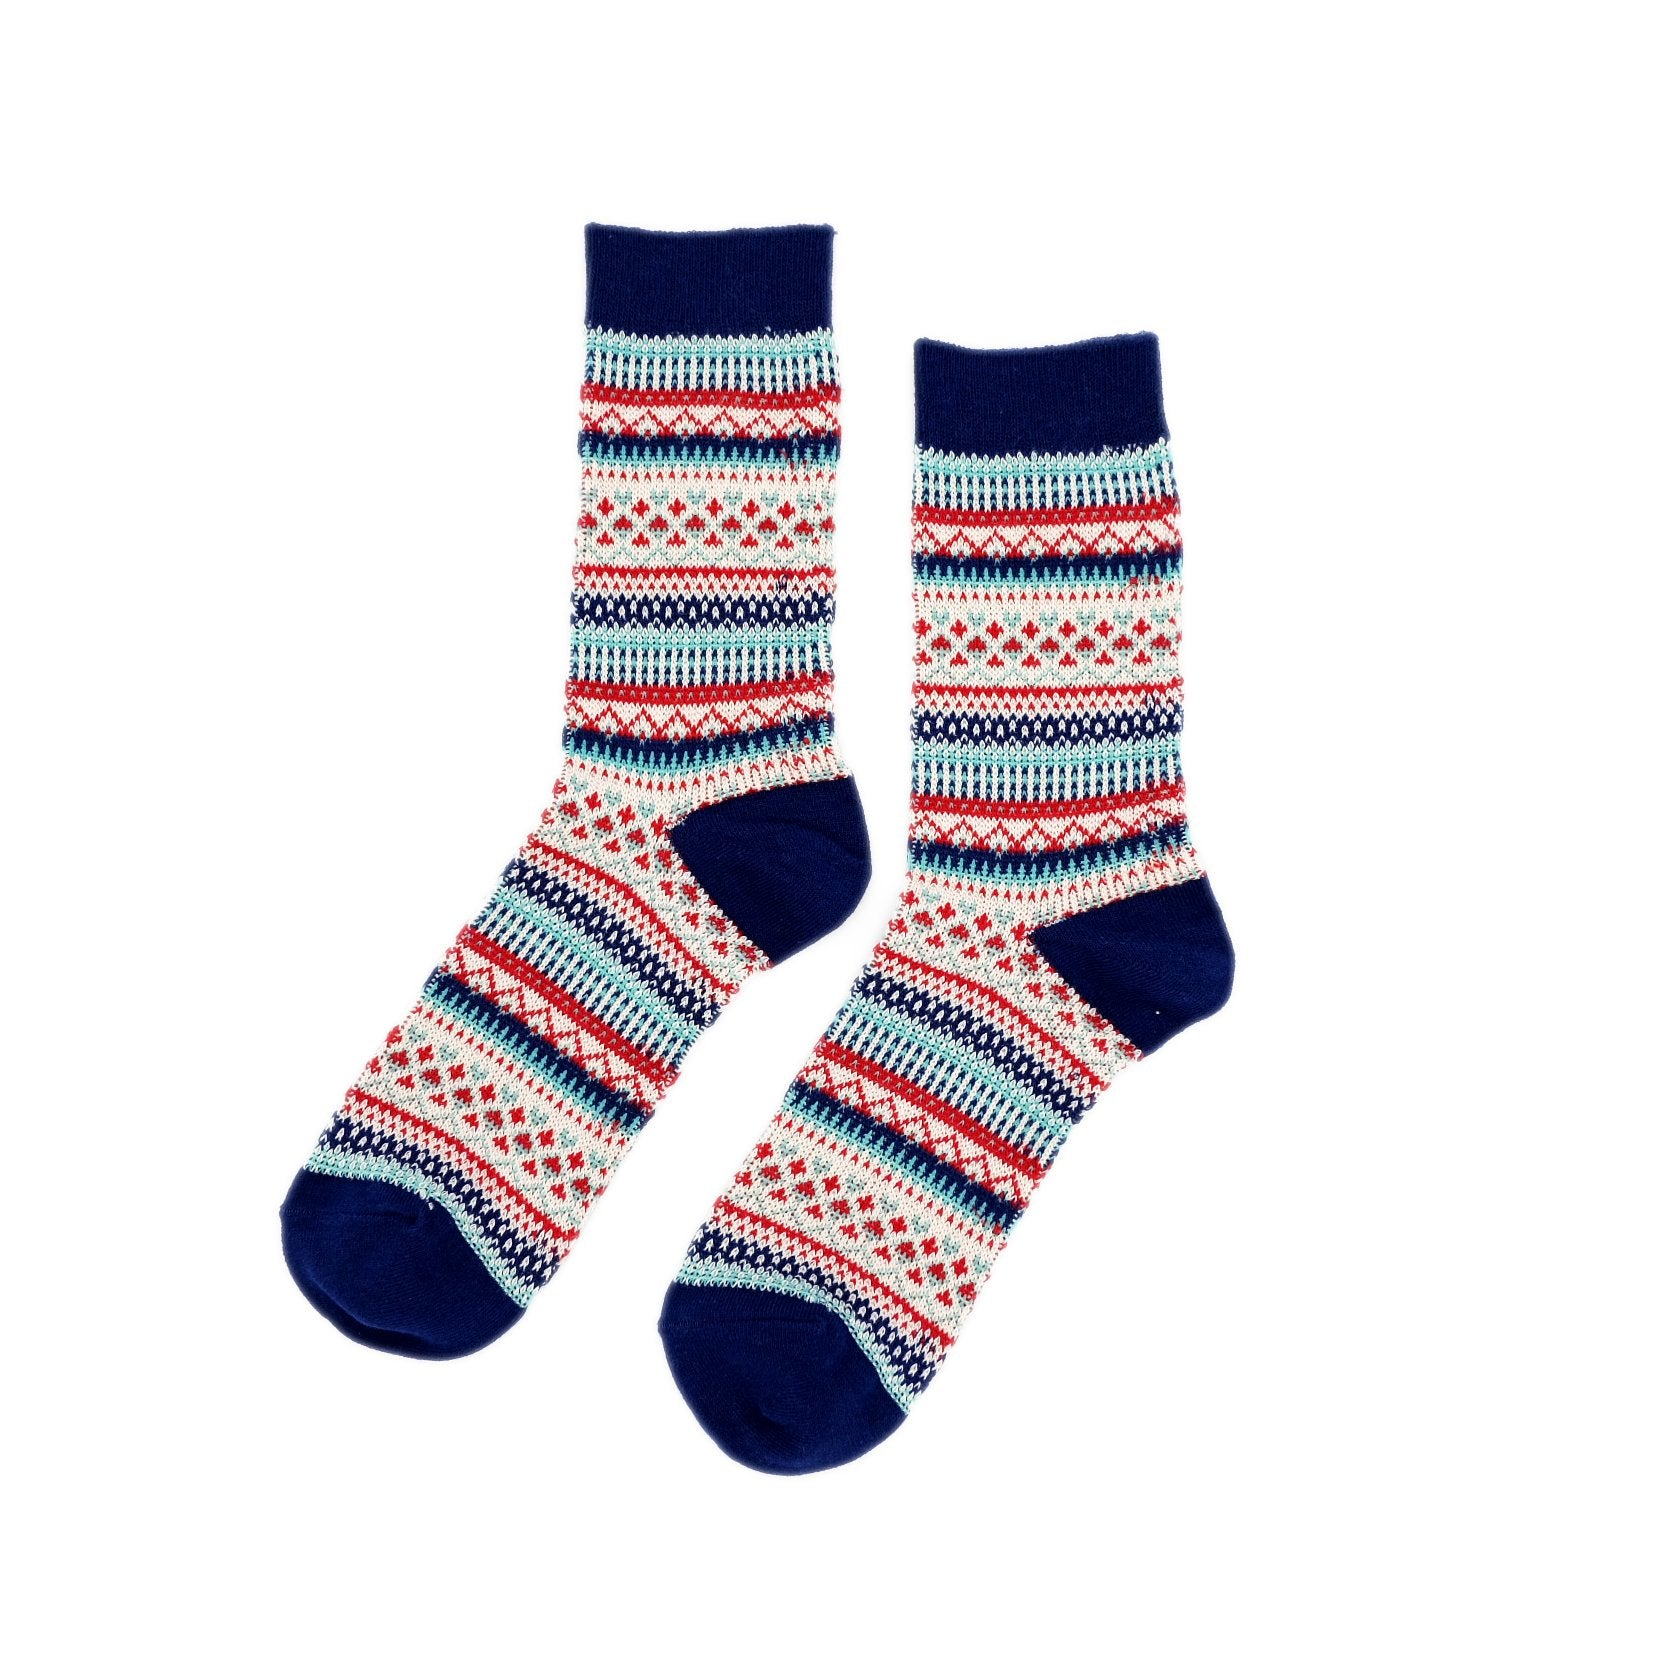 Akai Stripe Socks